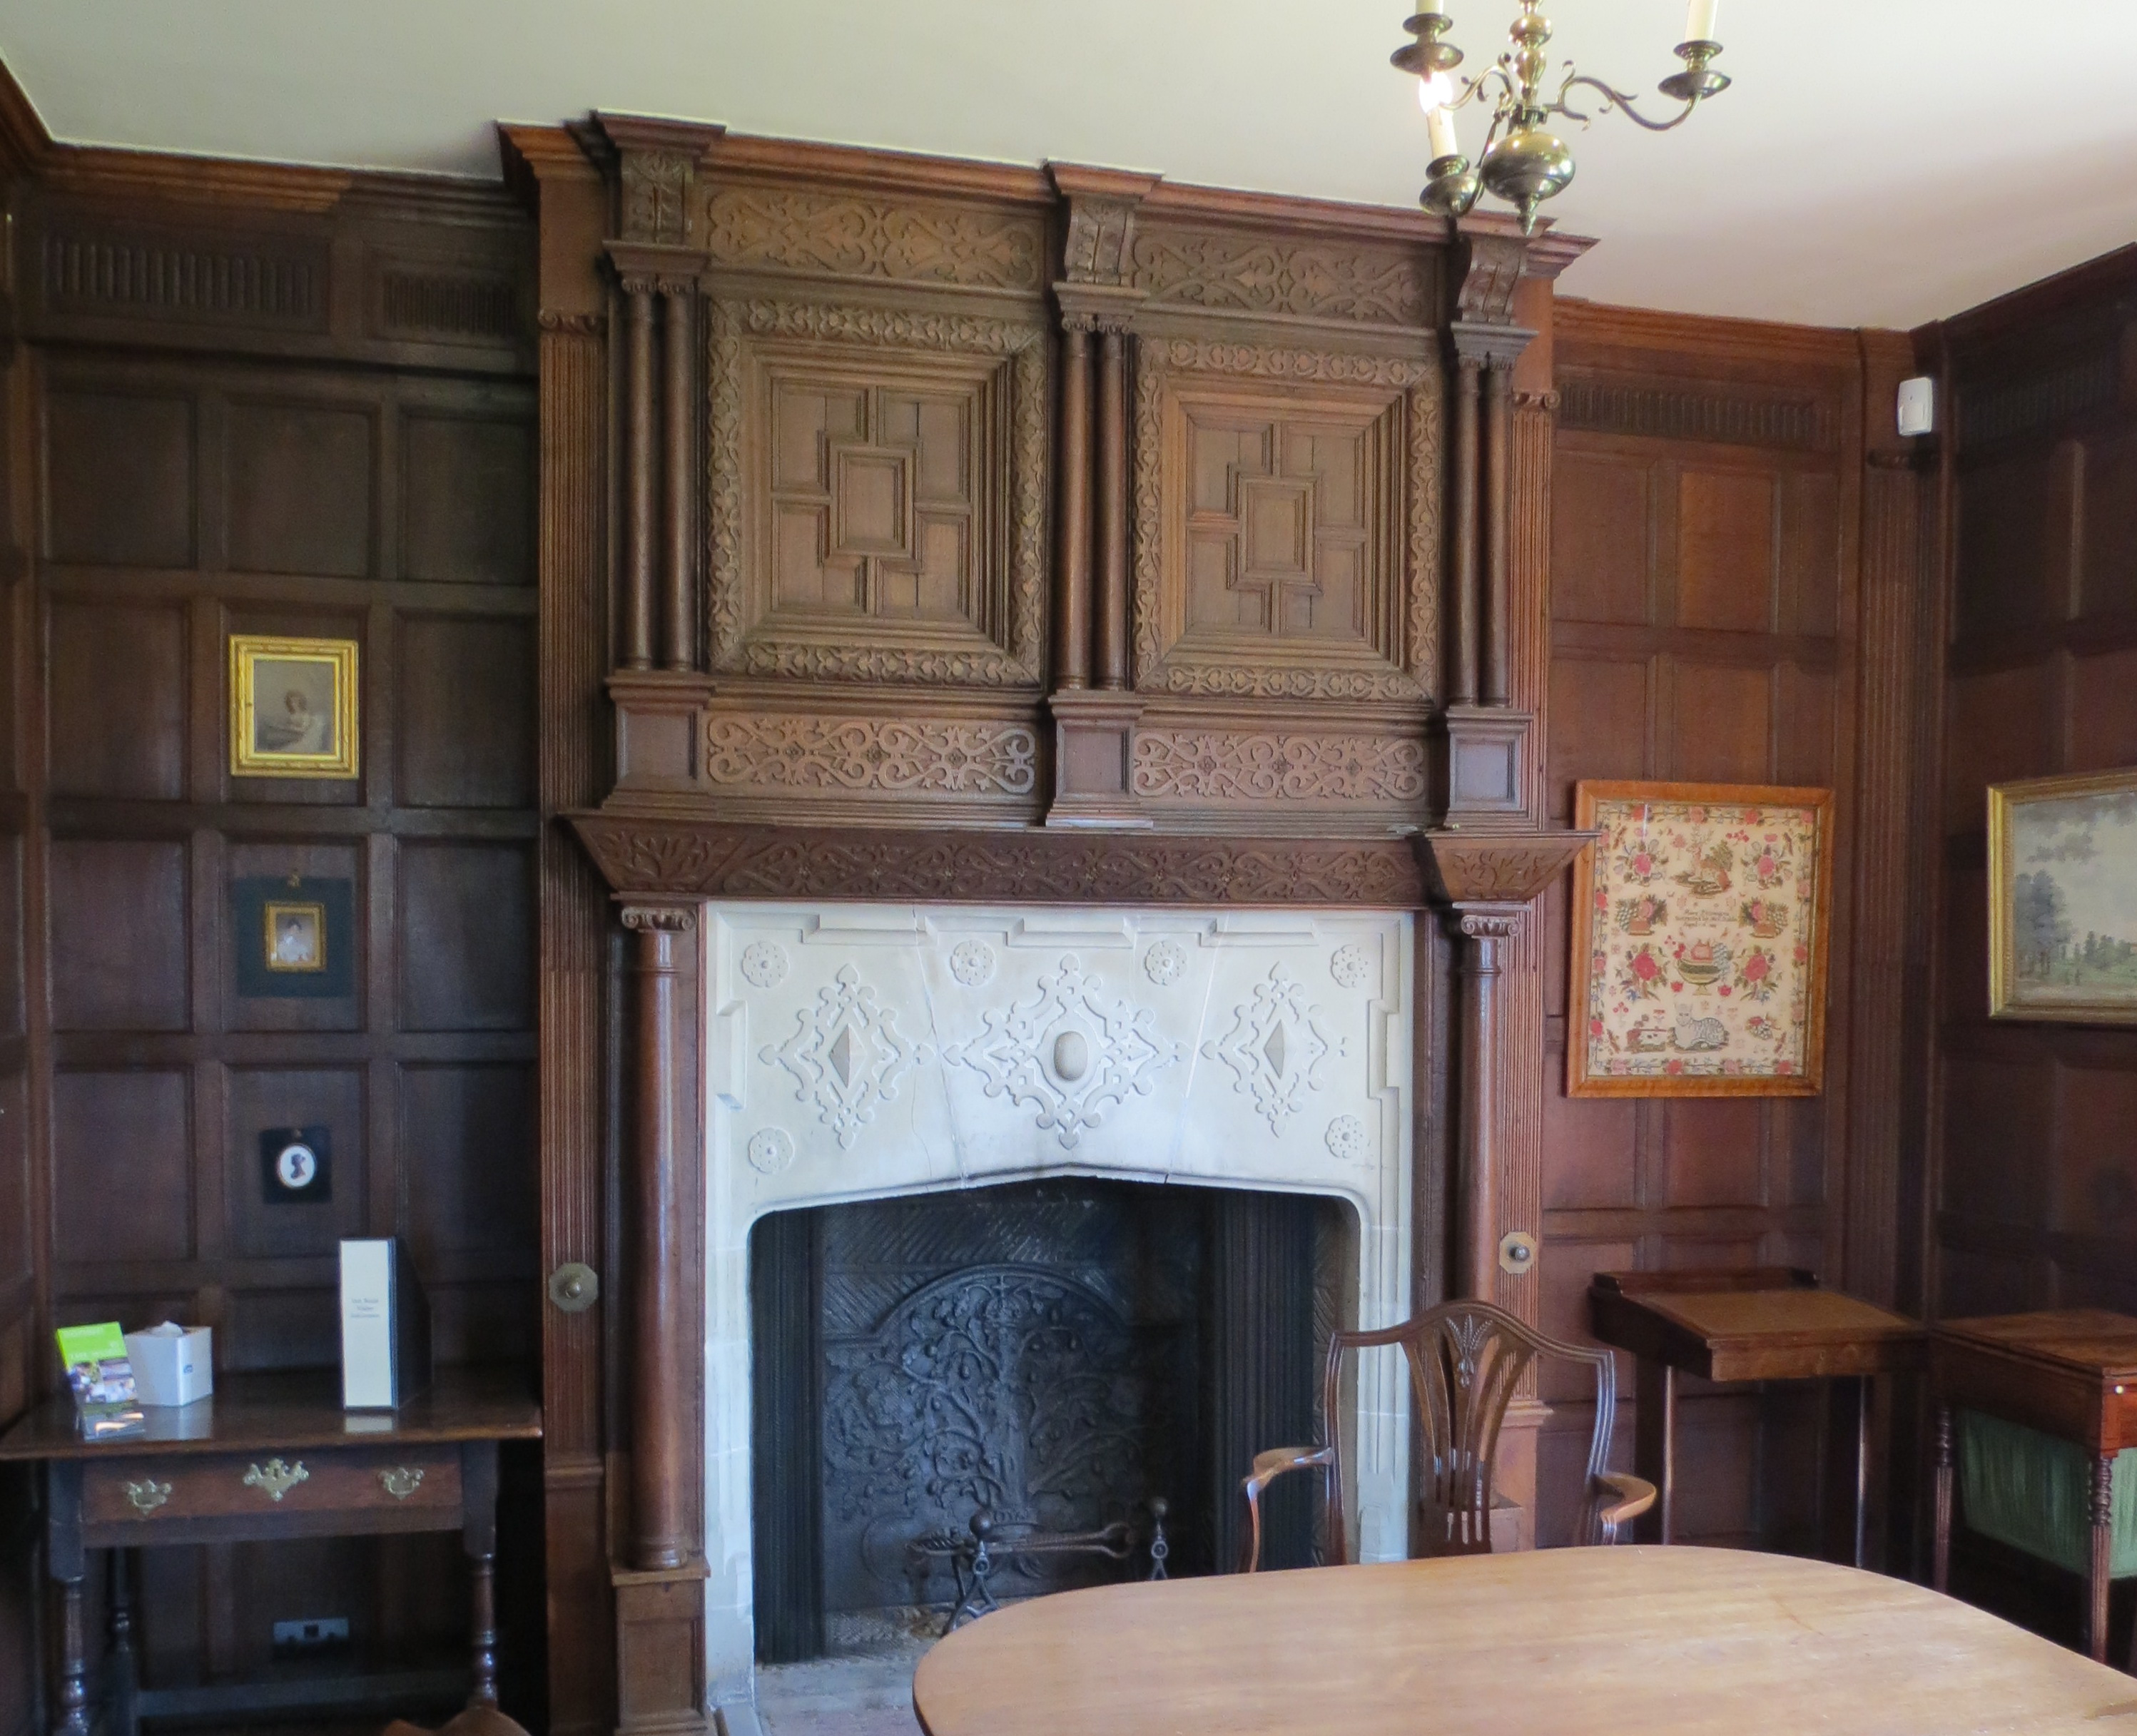 Chawton Great House Fireplace